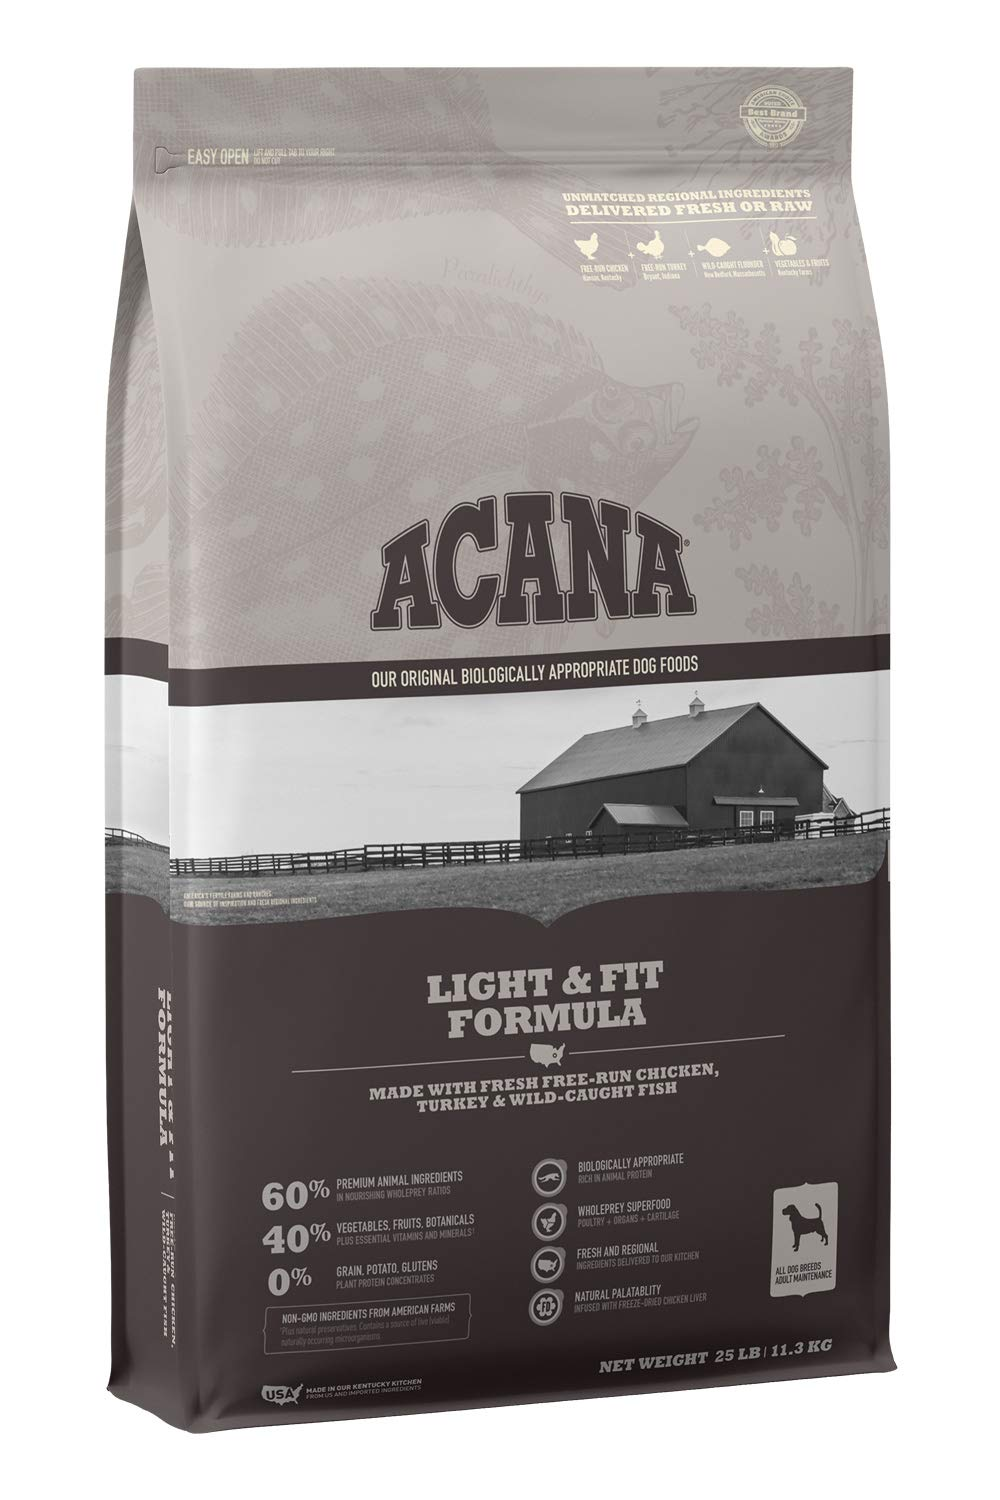 ACANA Heritage Dry Dog Food, Light & Fit, Biologically Appropriate & Grain Free by ACANA